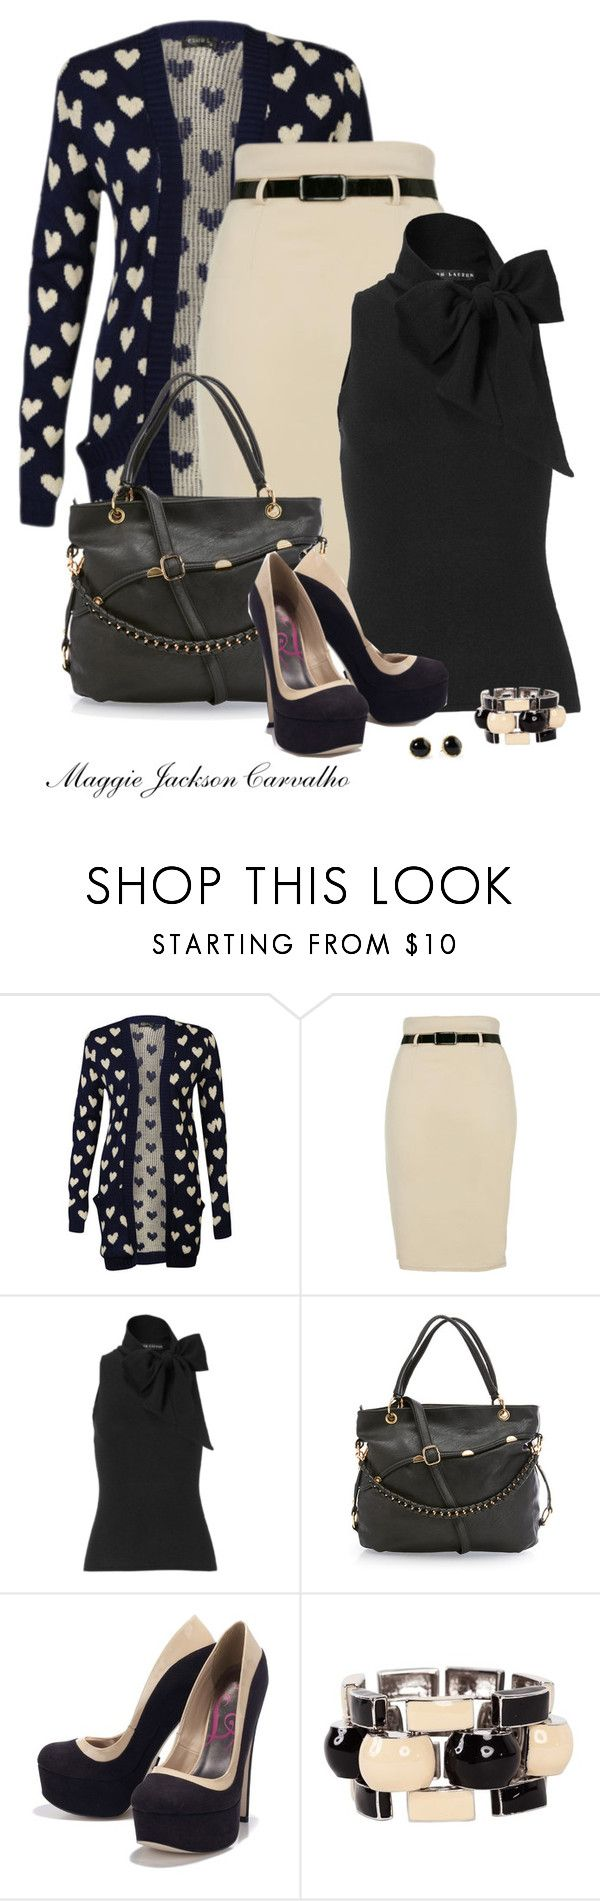 """Heart Cardigan"" by maggie-jackson-carvalho ❤ liked on Polyvore featuring Club L, Ralph Lauren, Lipsy, J.W. Anderson and Pim + Larkin"